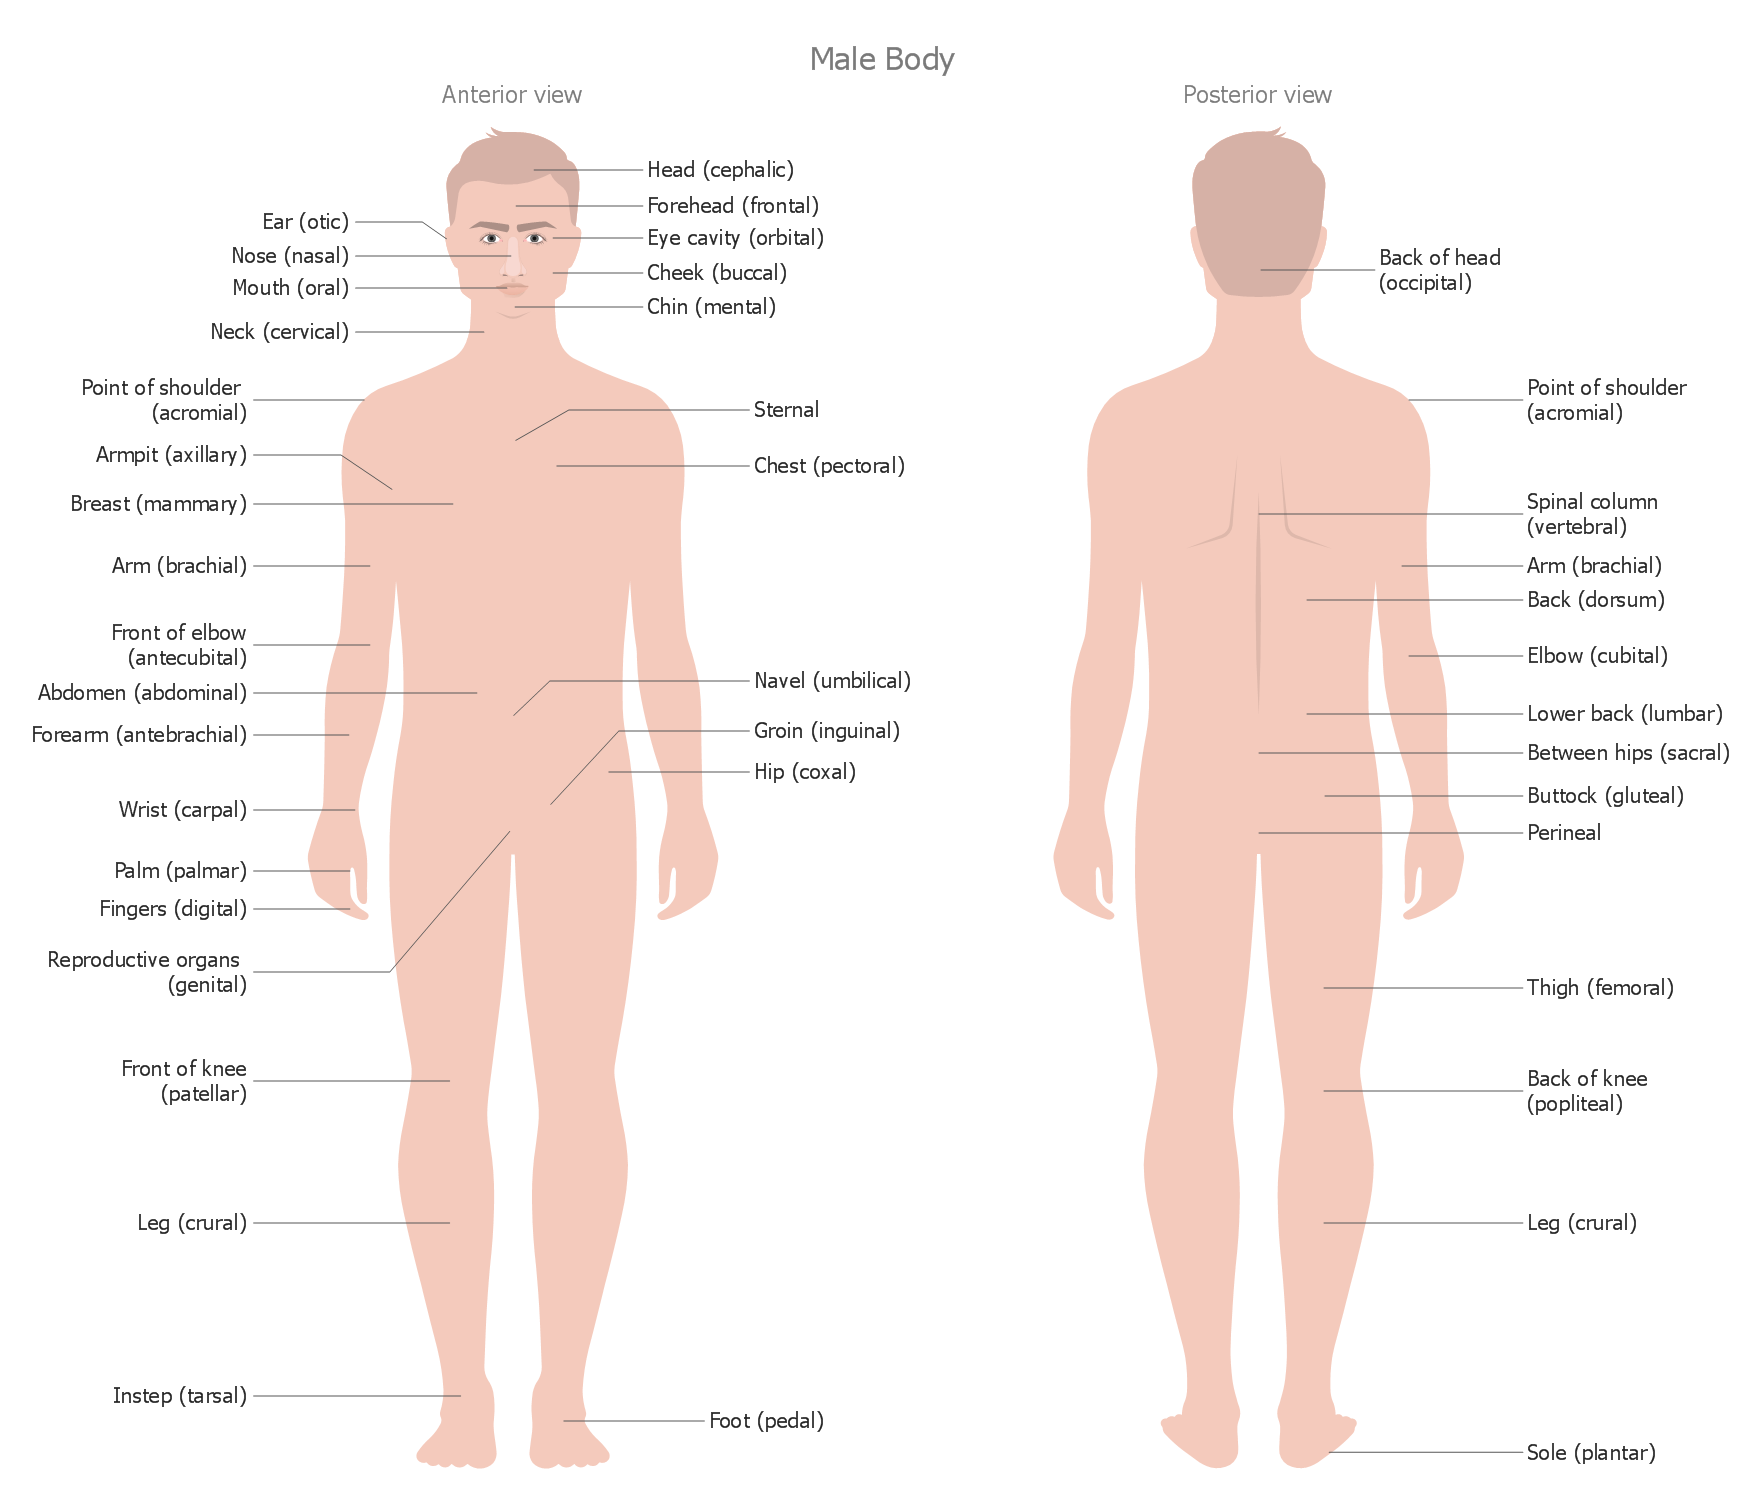 Human Anatomy Male Body This Sample Represents The Interior And